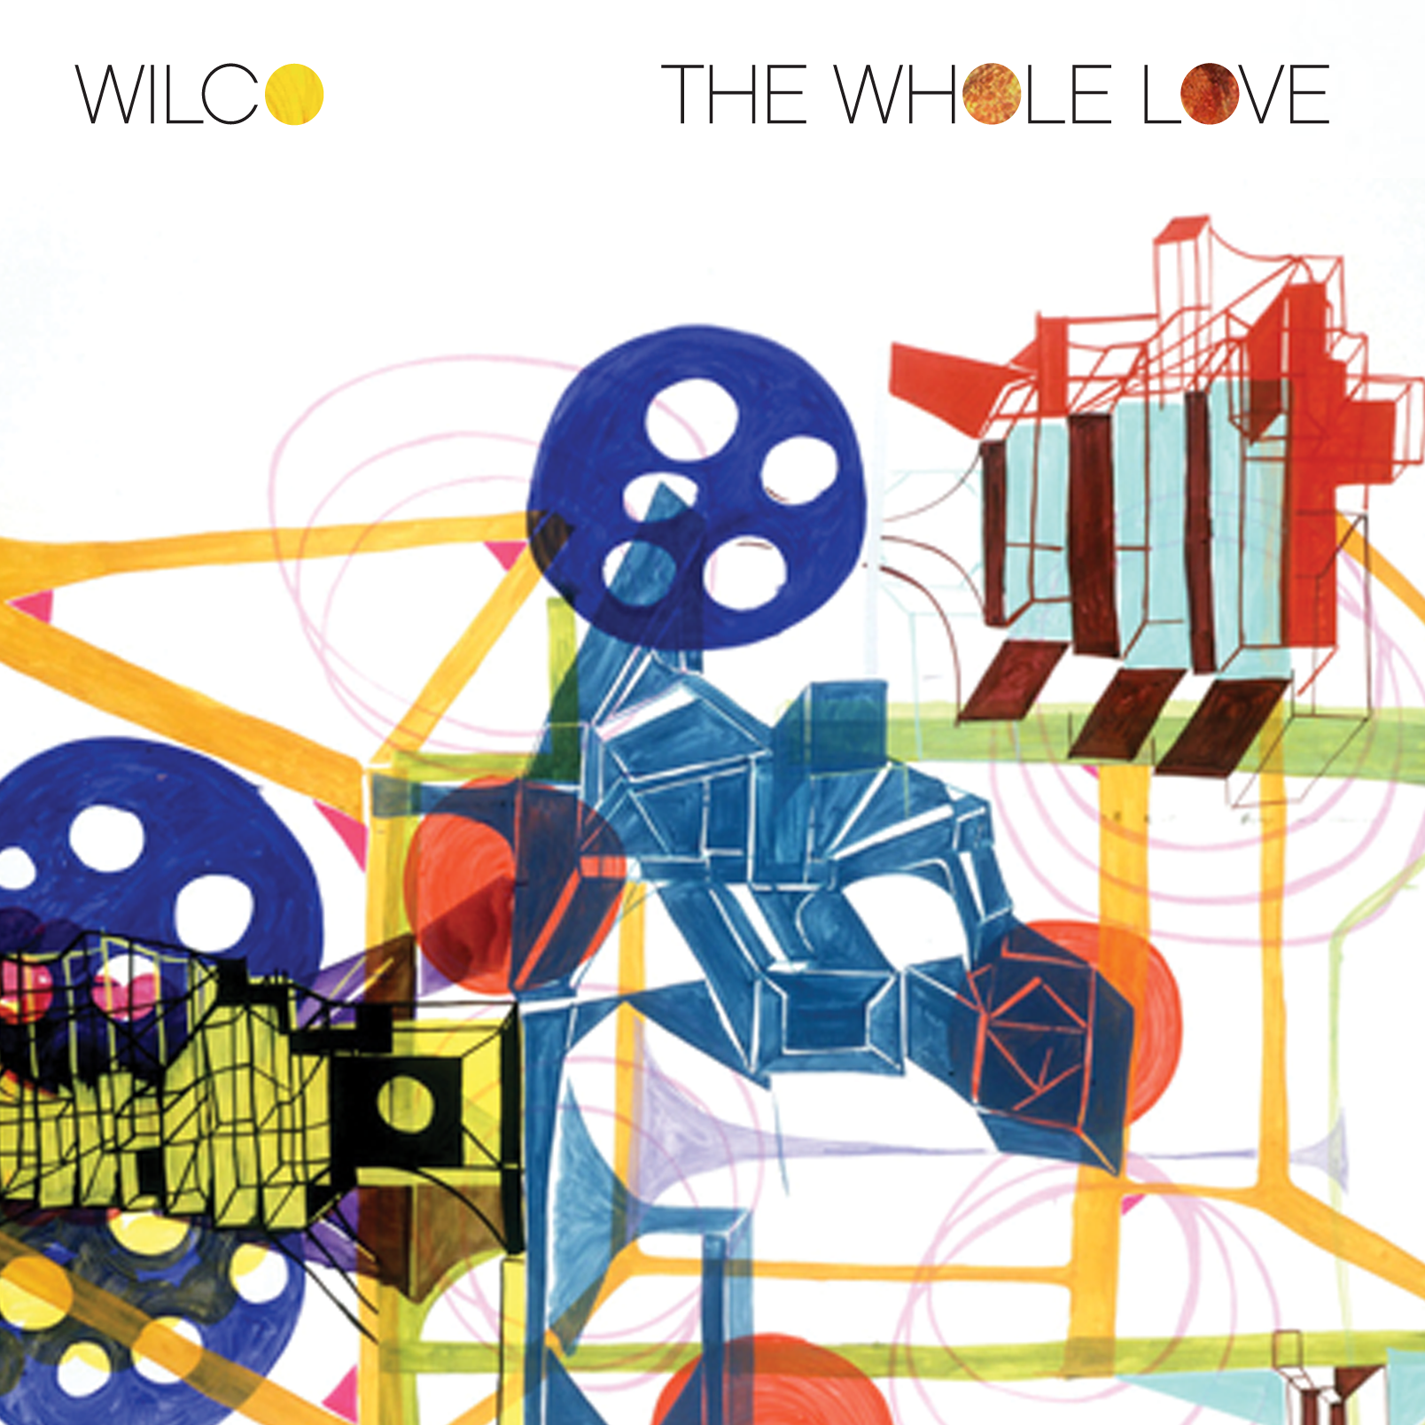 Wilco The Whole Love Deluxe Edition Vinilo Vinilos Caratula